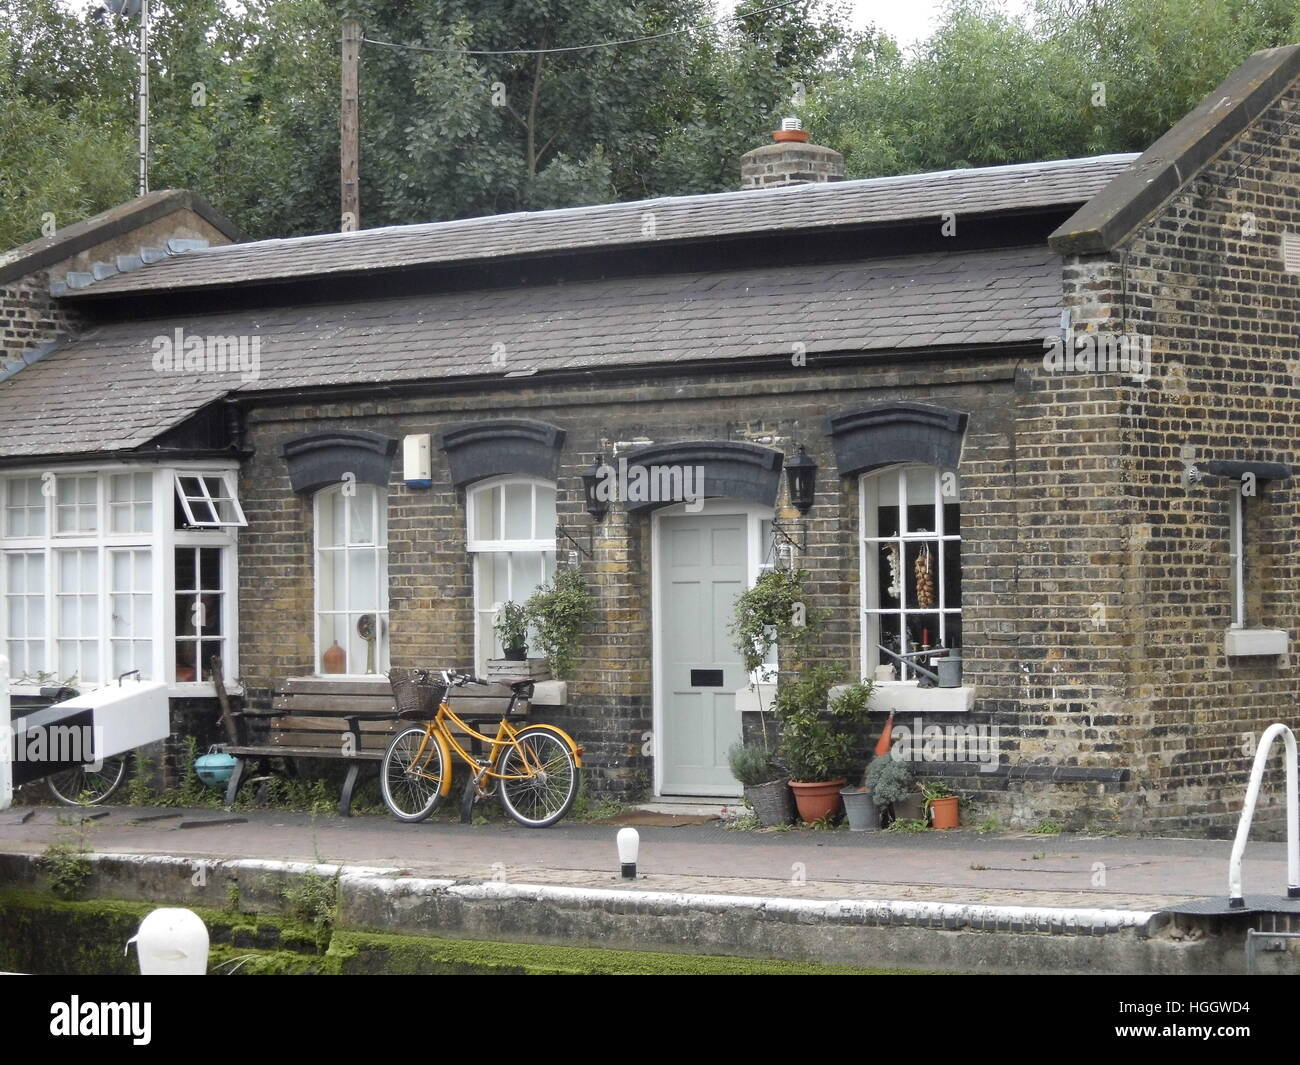 Lock keepers house with yellow cycle parked outside Stock Photo